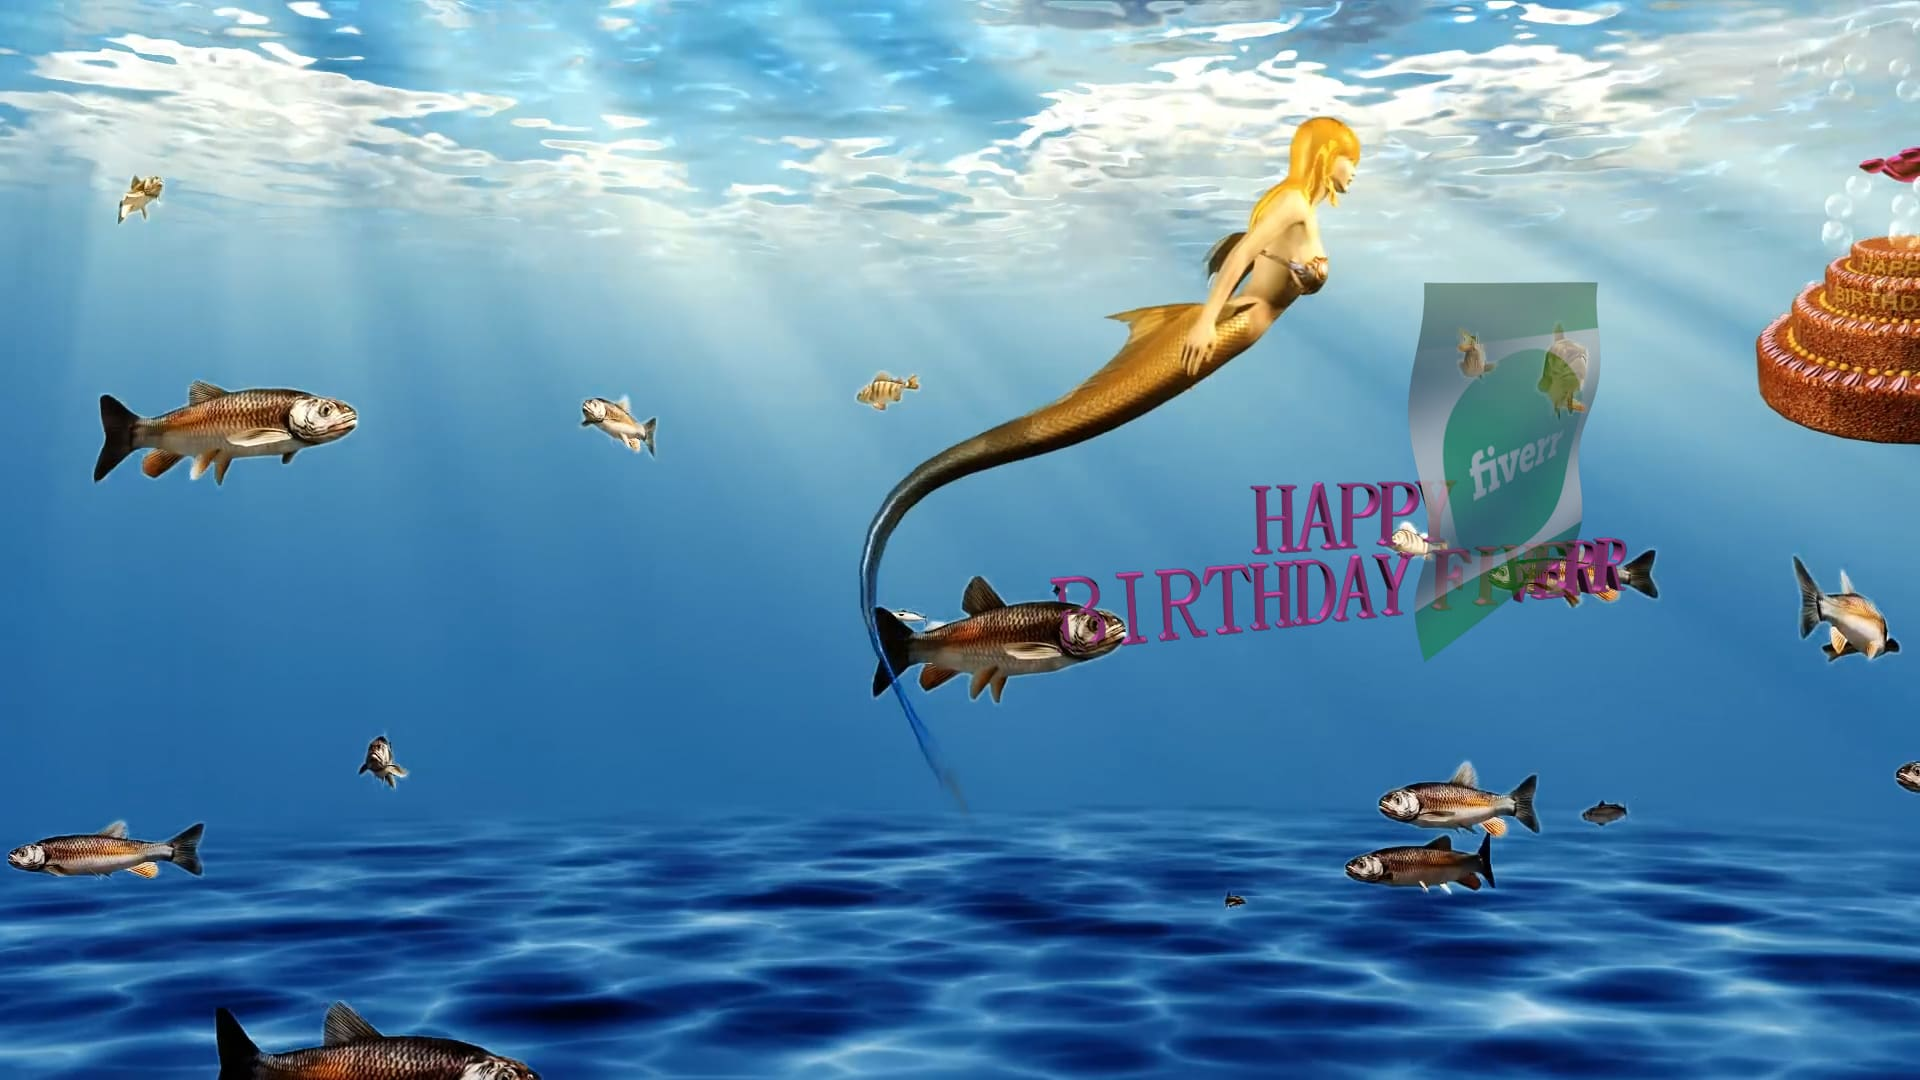 I Will Make Exclusive Funny Happy Birthday Greeting Animated Video